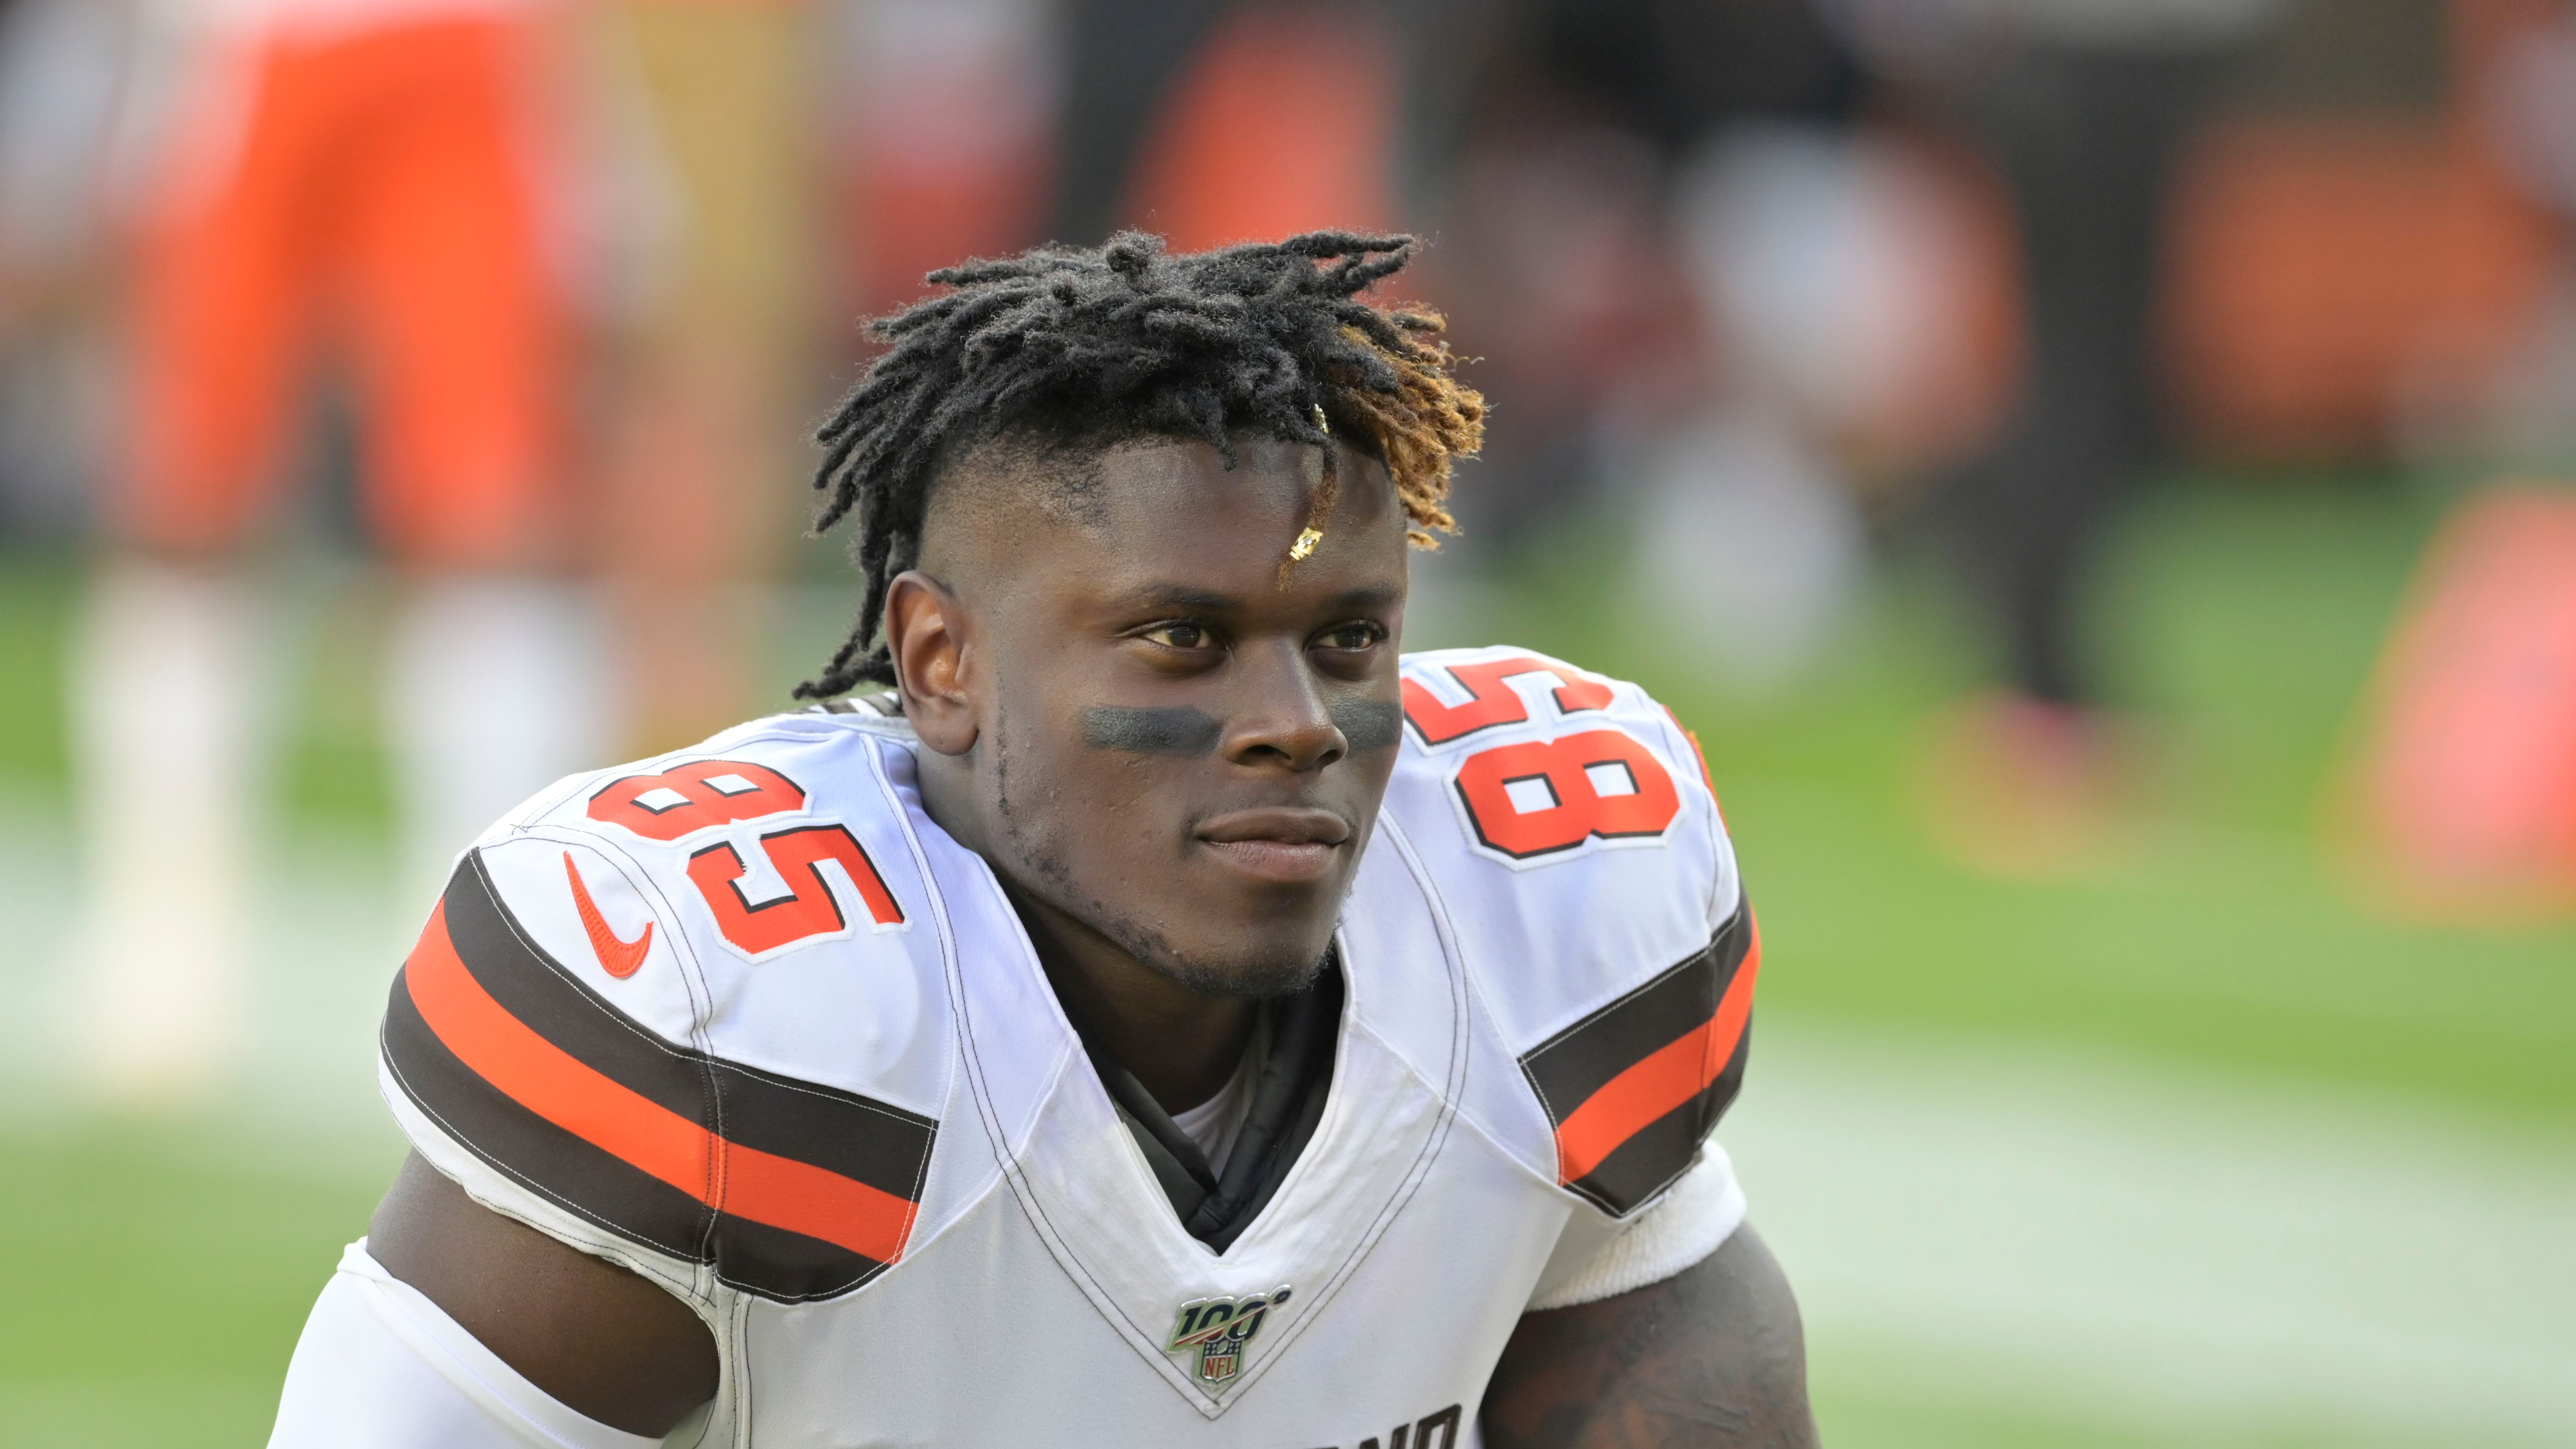 Report: Cleveland Browns tight end David Njoku requests trade